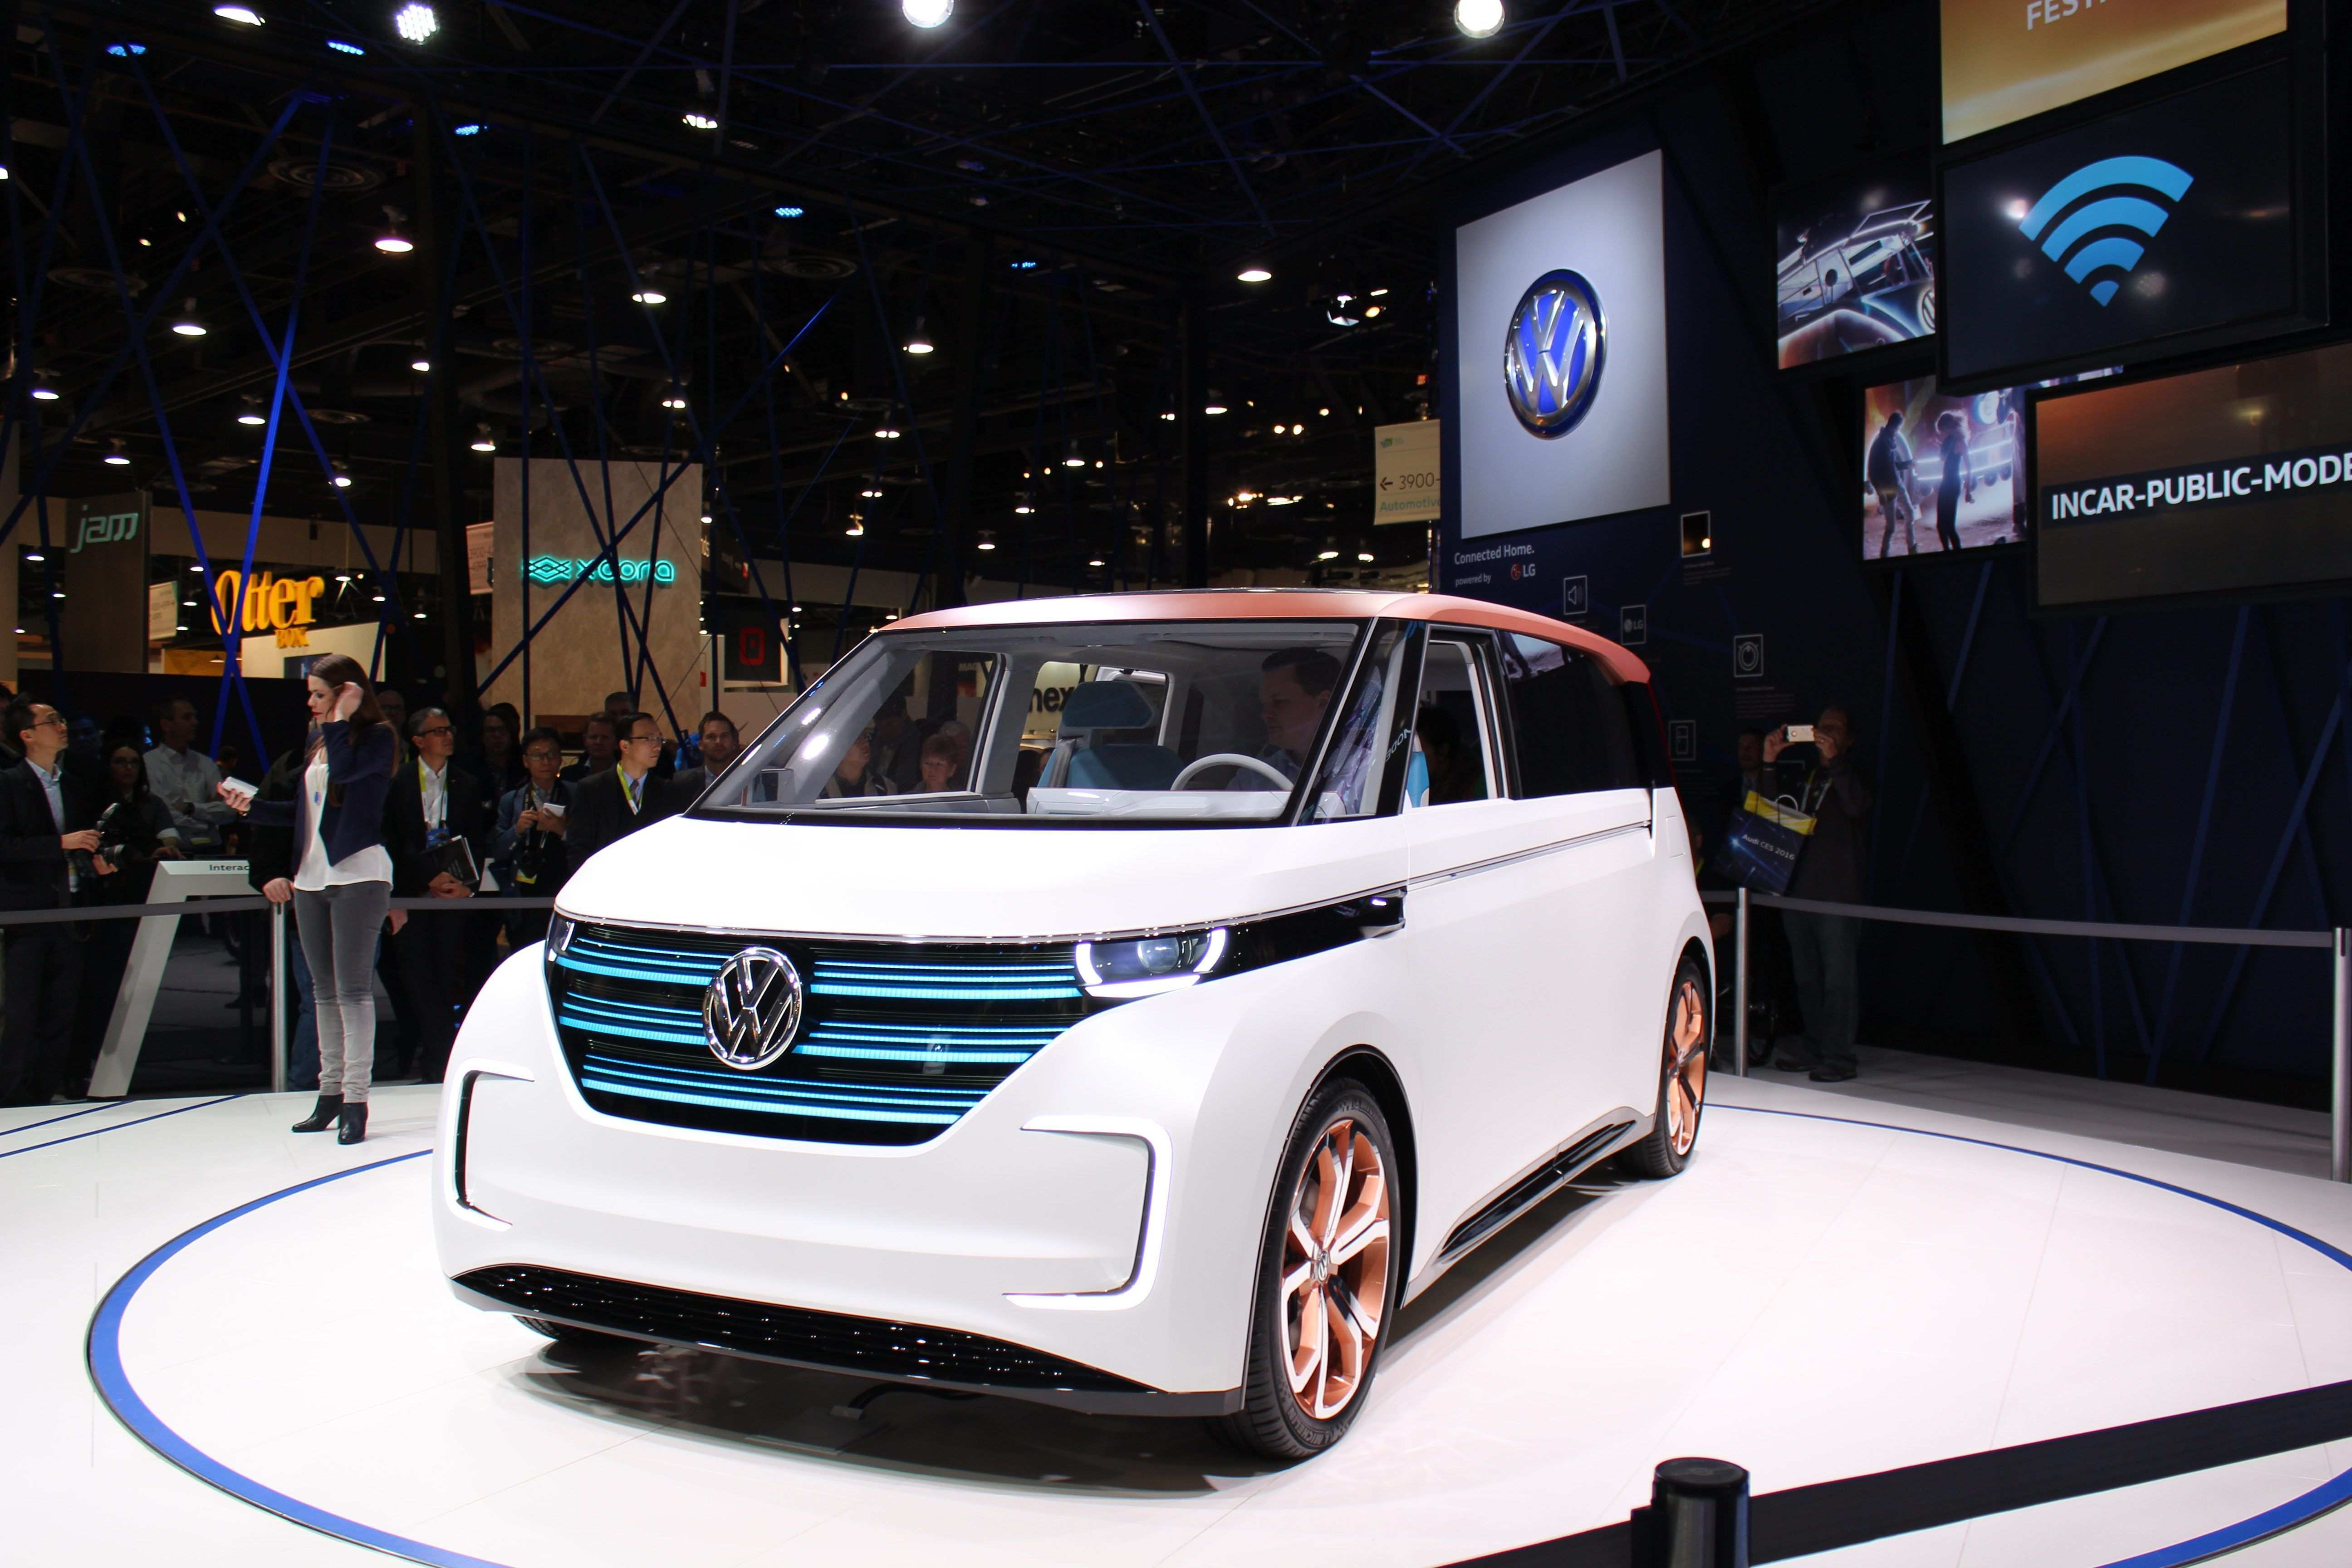 53 Concept of Volkswagen 2020 Concept Exterior and Interior with Volkswagen 2020 Concept